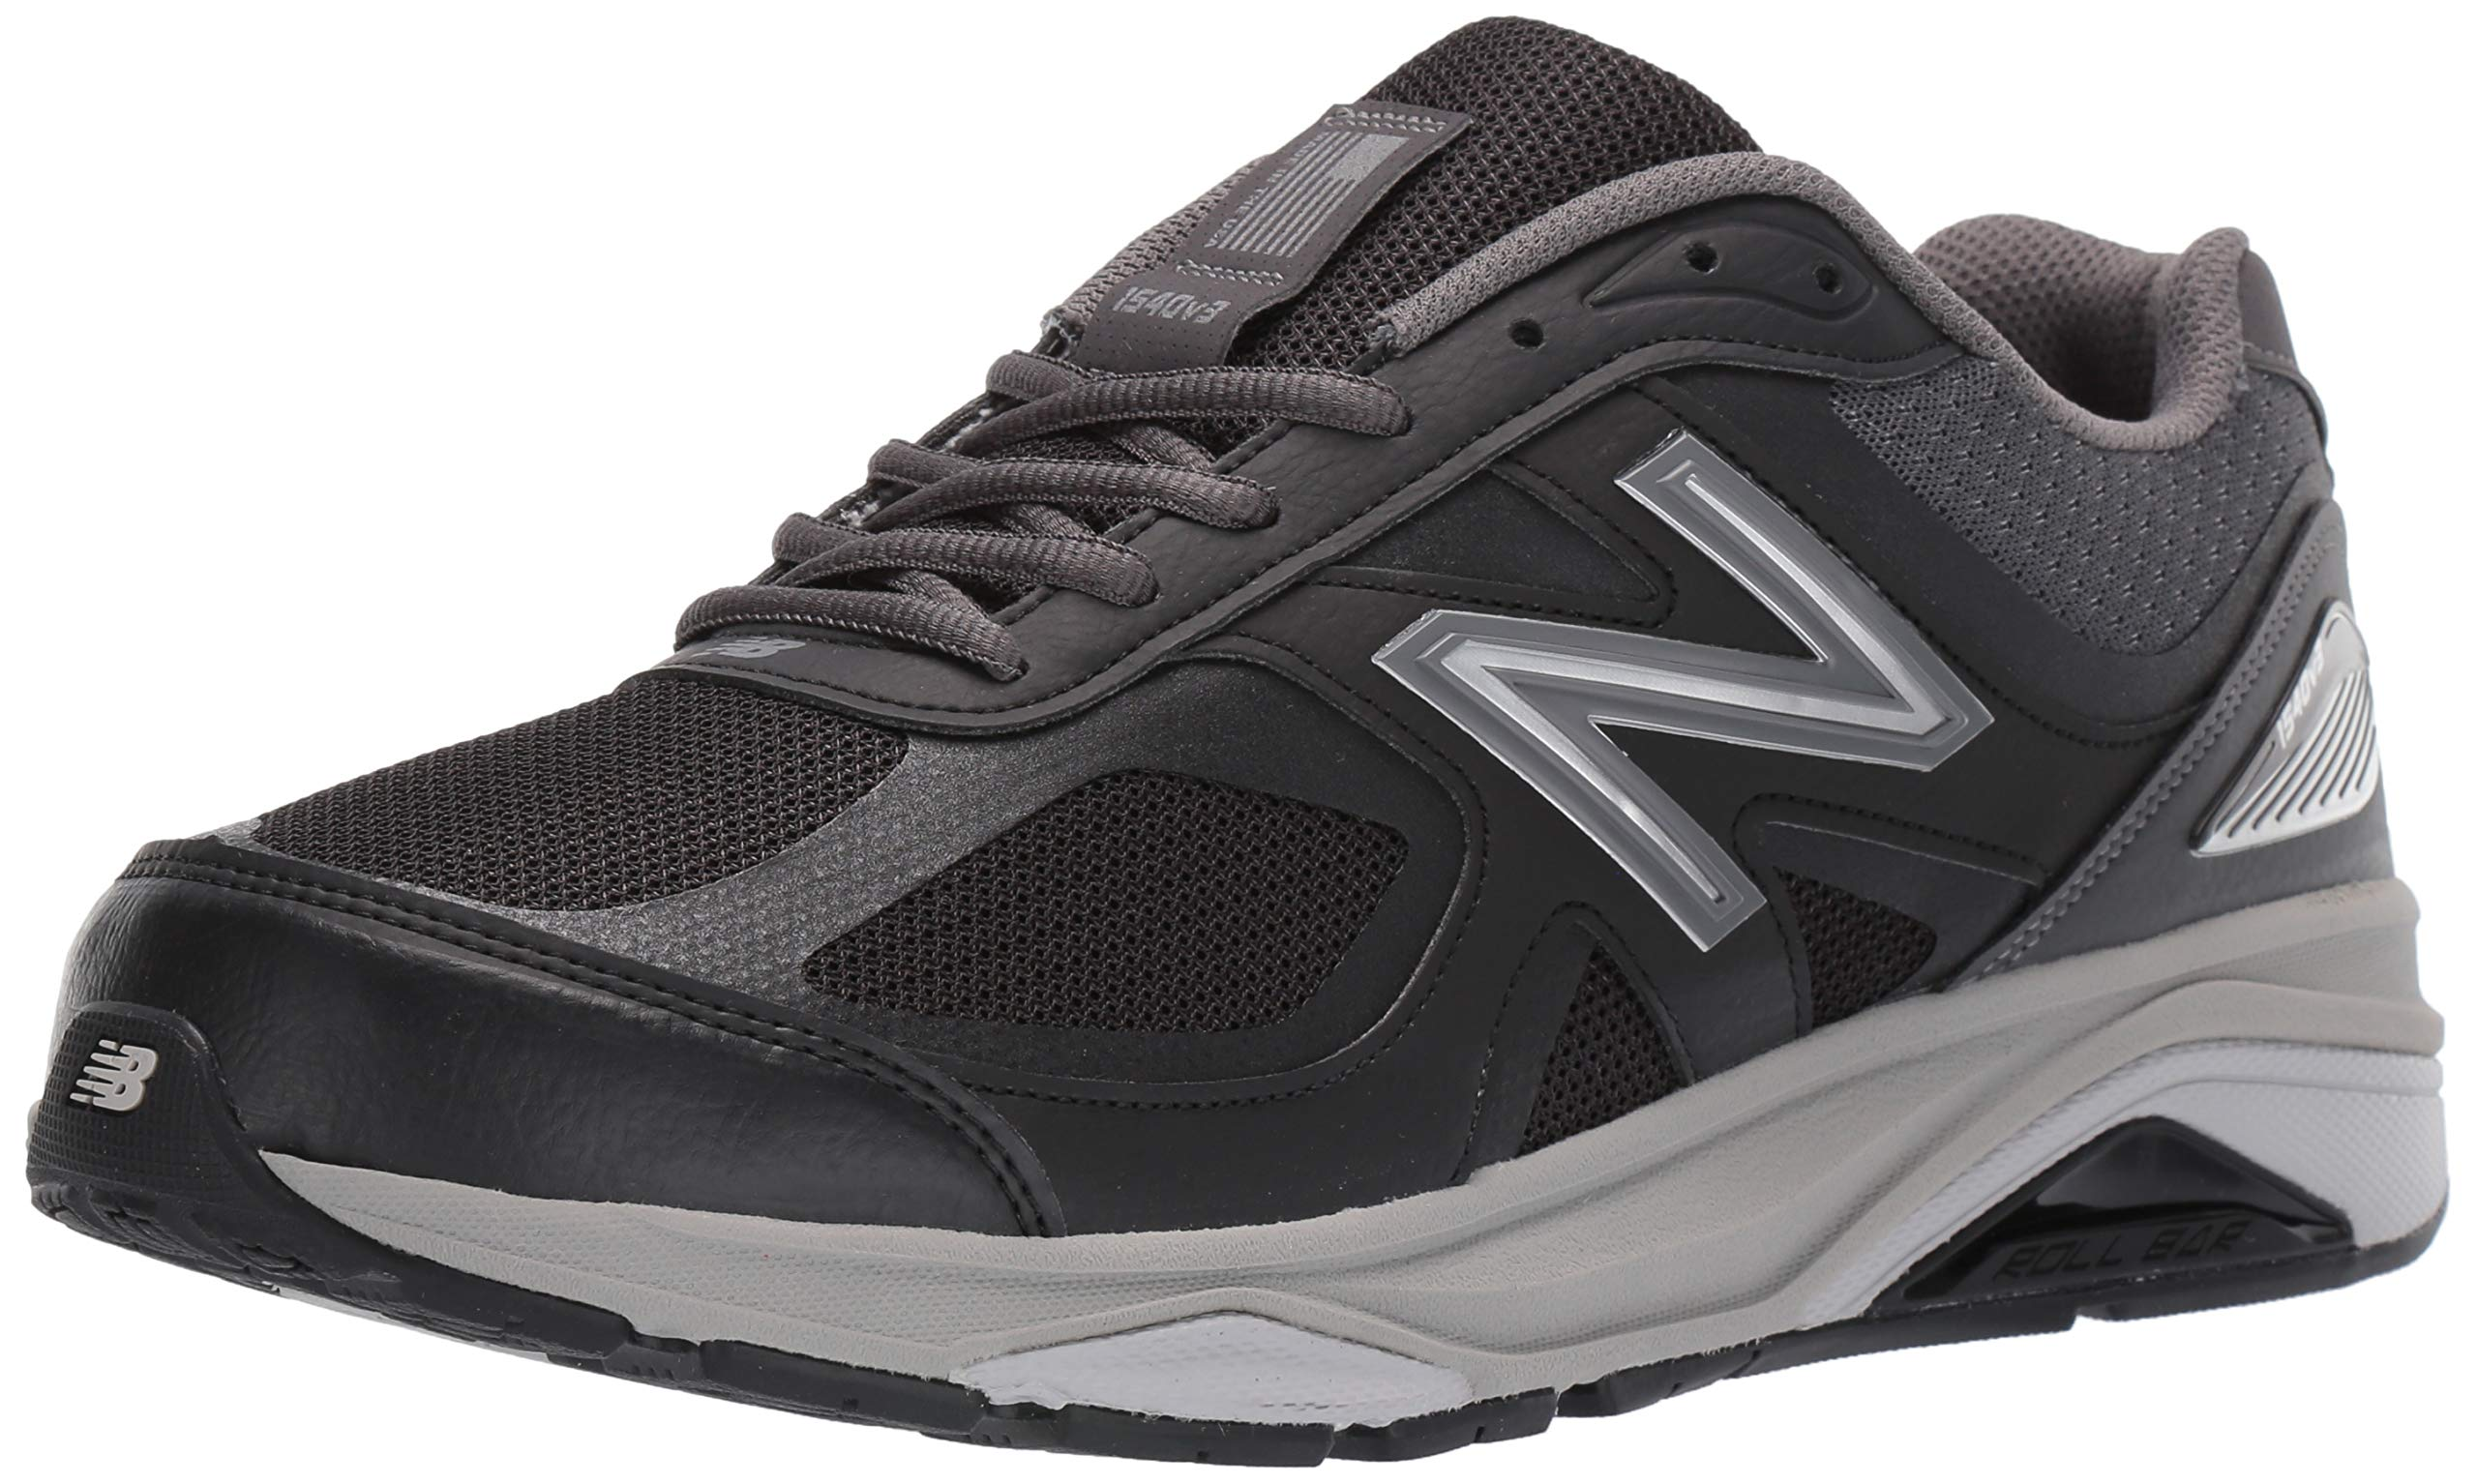 New Balance Men's 1540v3 Running Shoe, Black/Castlerock, 7 N US